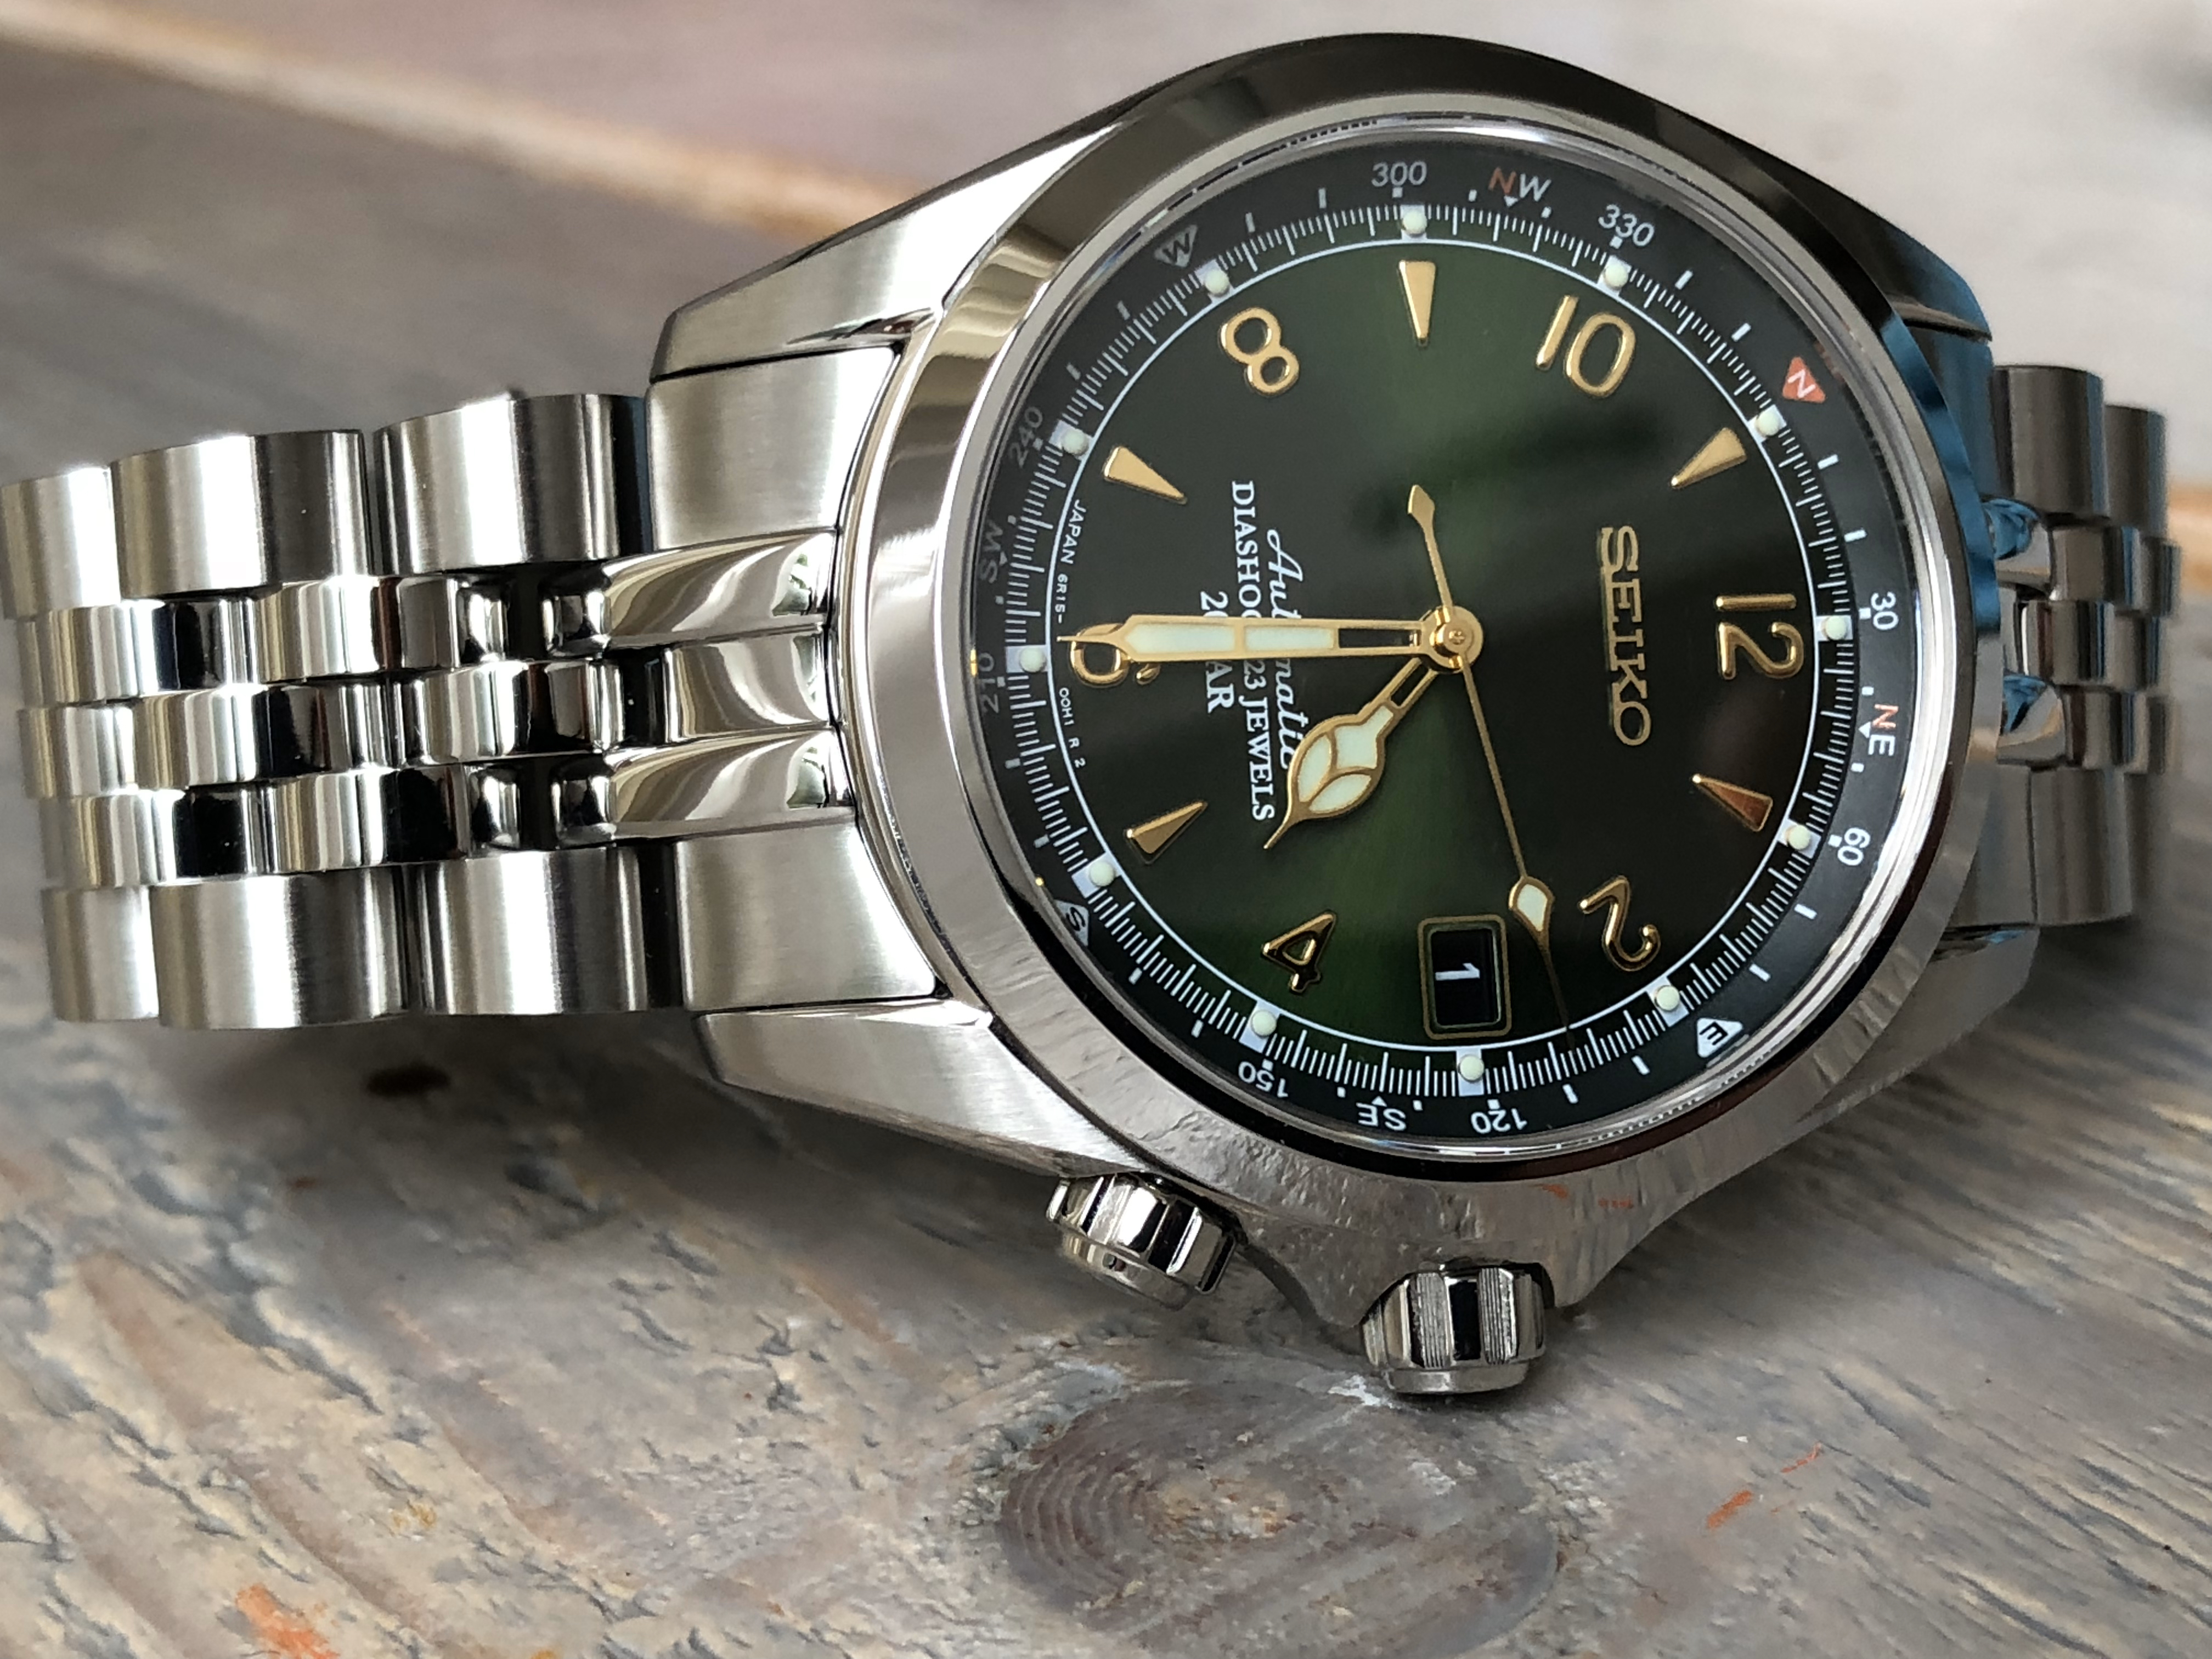 Seiko Alpinist SARB017 -6R15D (For sale)